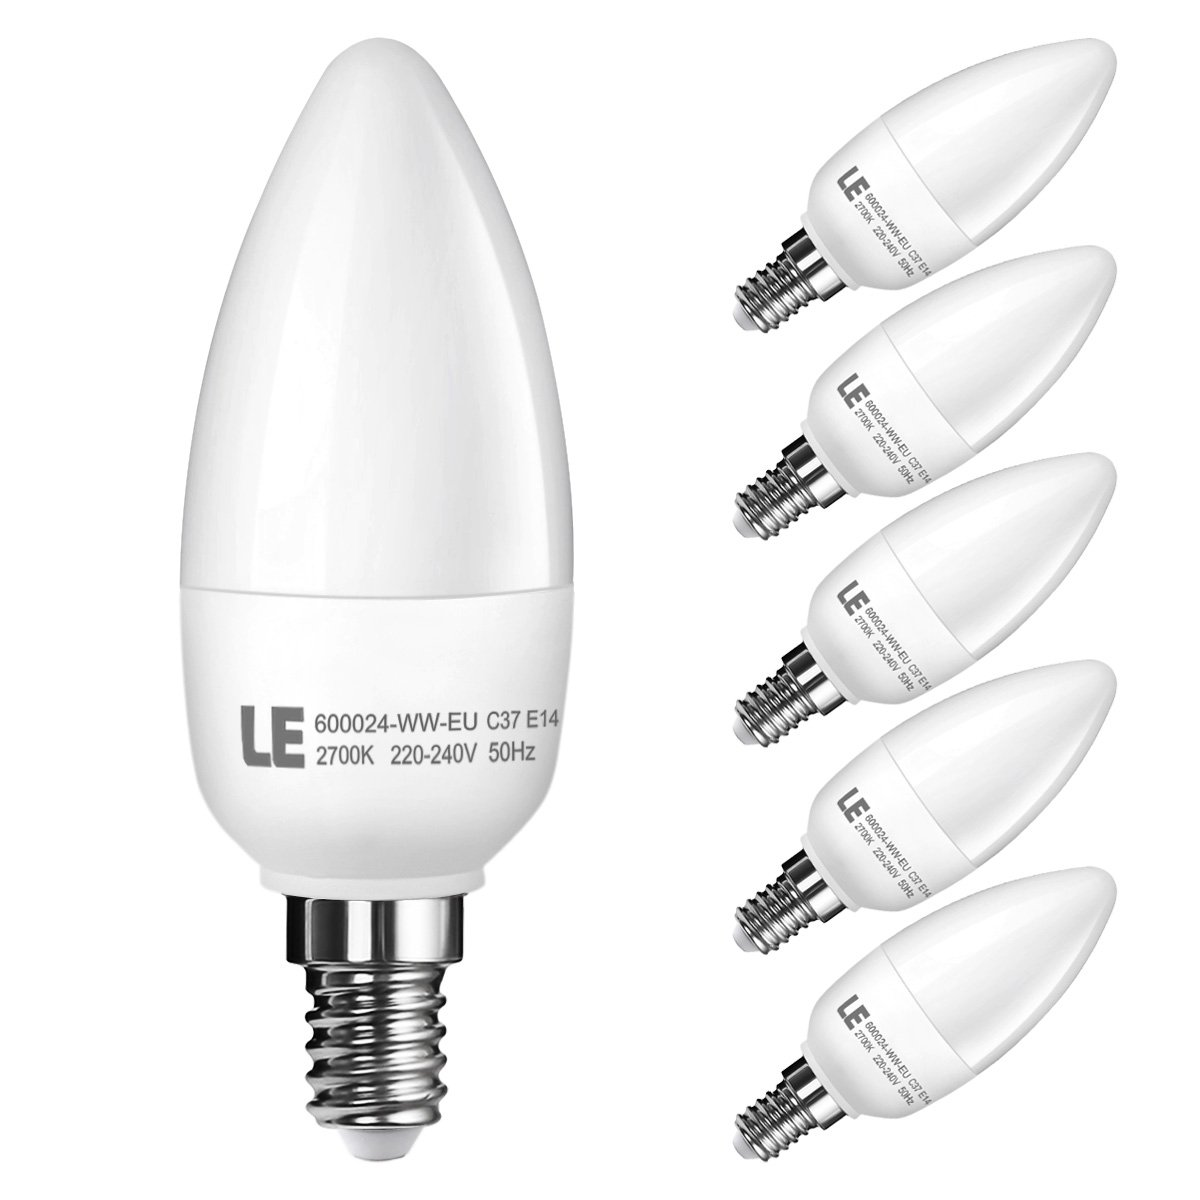 Le 55w e14 c37 led lampen ersatz fr 40w glhlampen 470lm le 55w e14 c37 led lampen ersatz fr 40w glhlampen 470lm warmwei 2700k 180 abstrahlwinkel led birnen kronleuchter led kerzenlampen led parisarafo Image collections